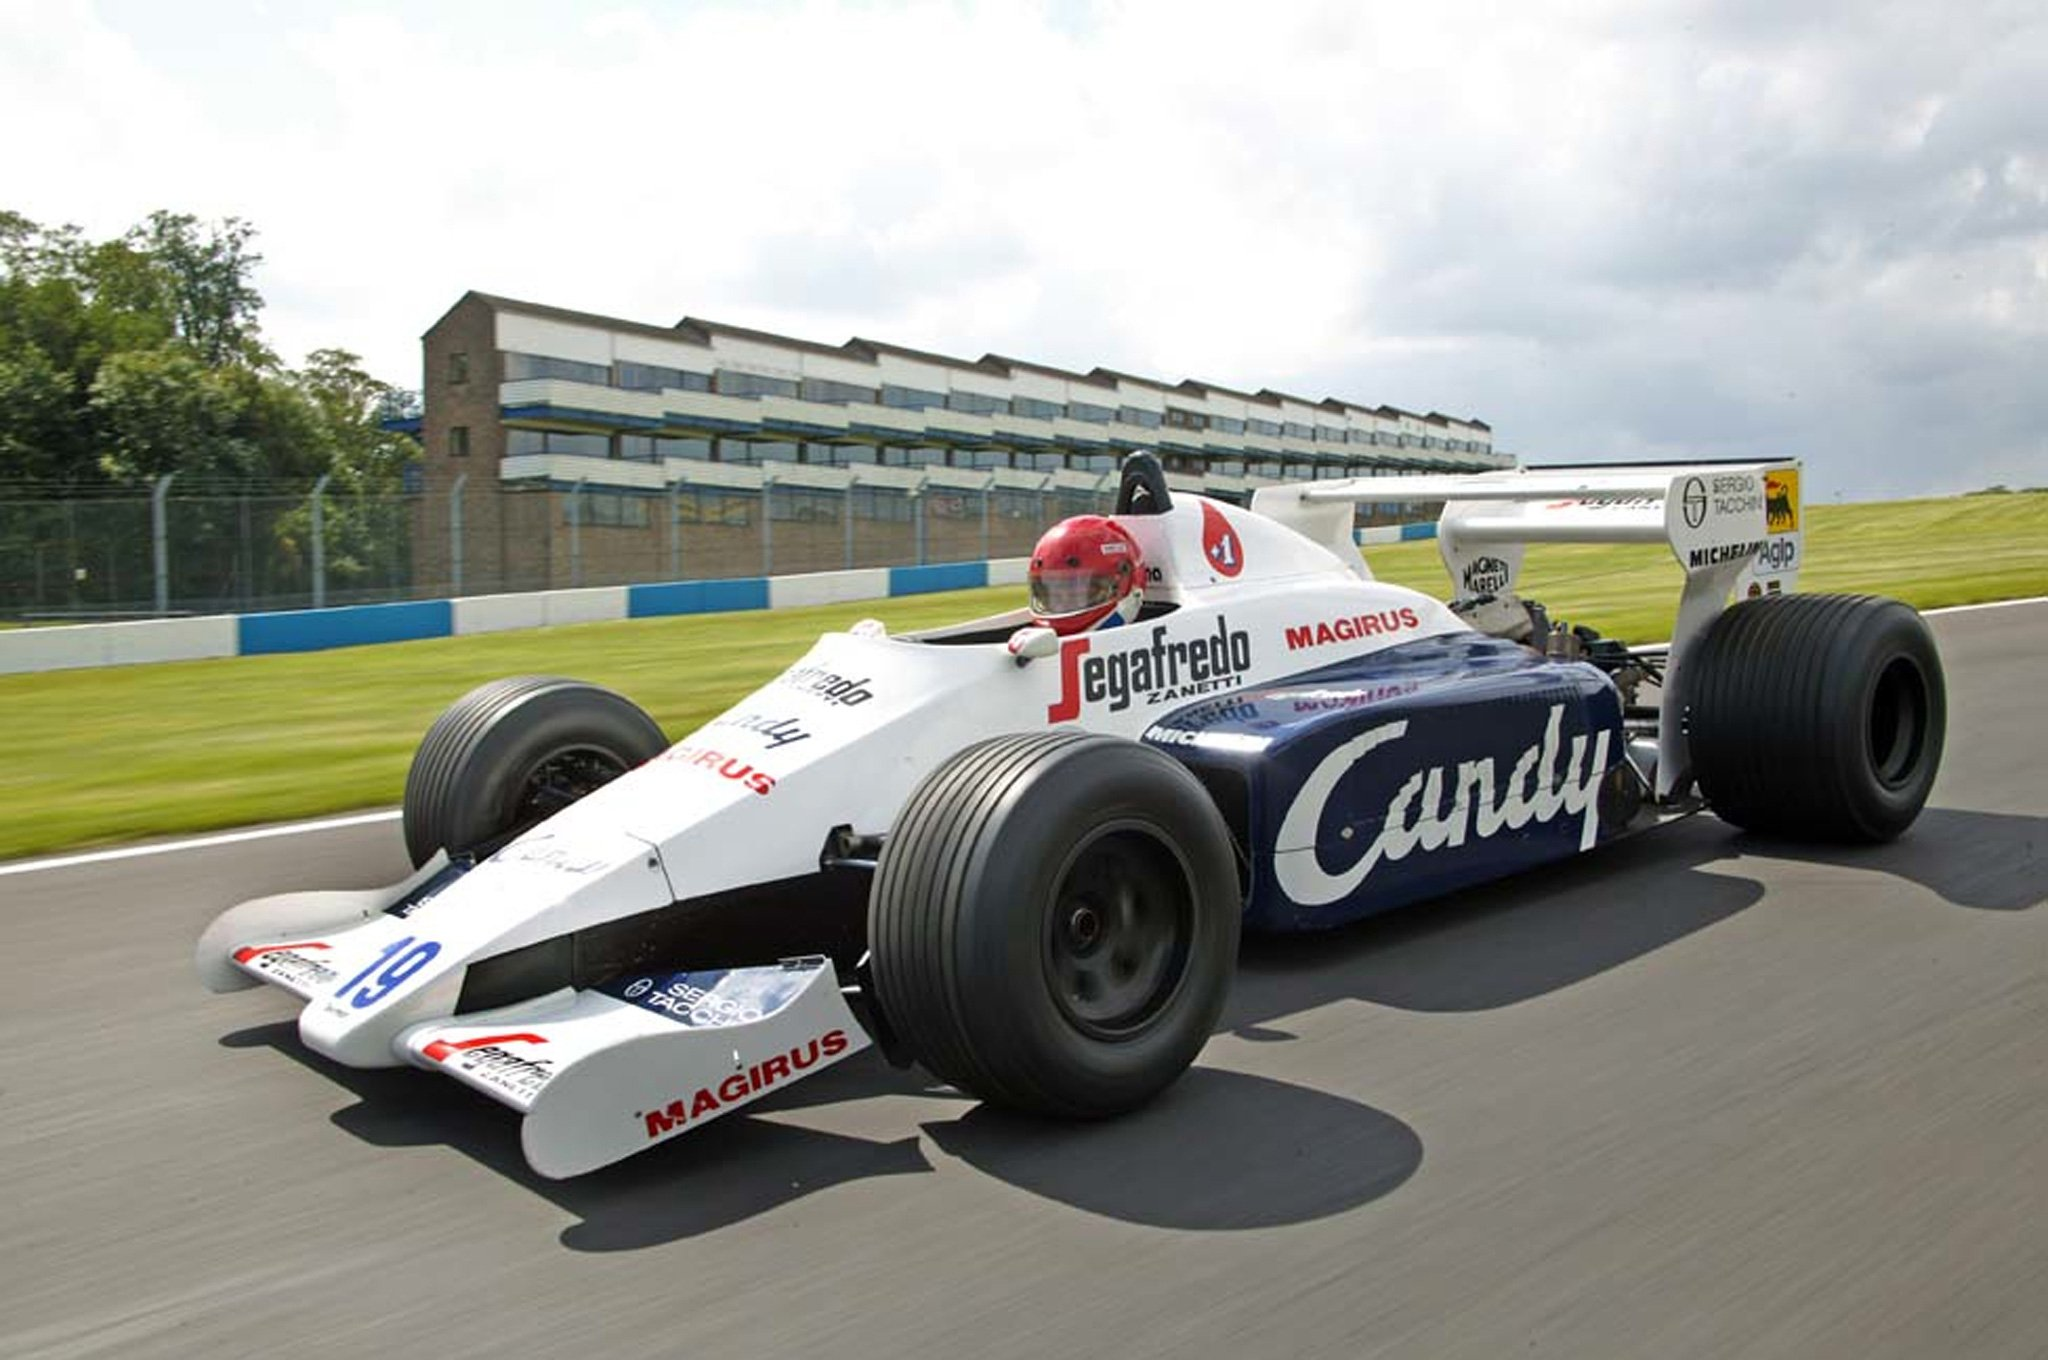 Own Senna's Rookie F1 Car If You Have $2 Million Handy